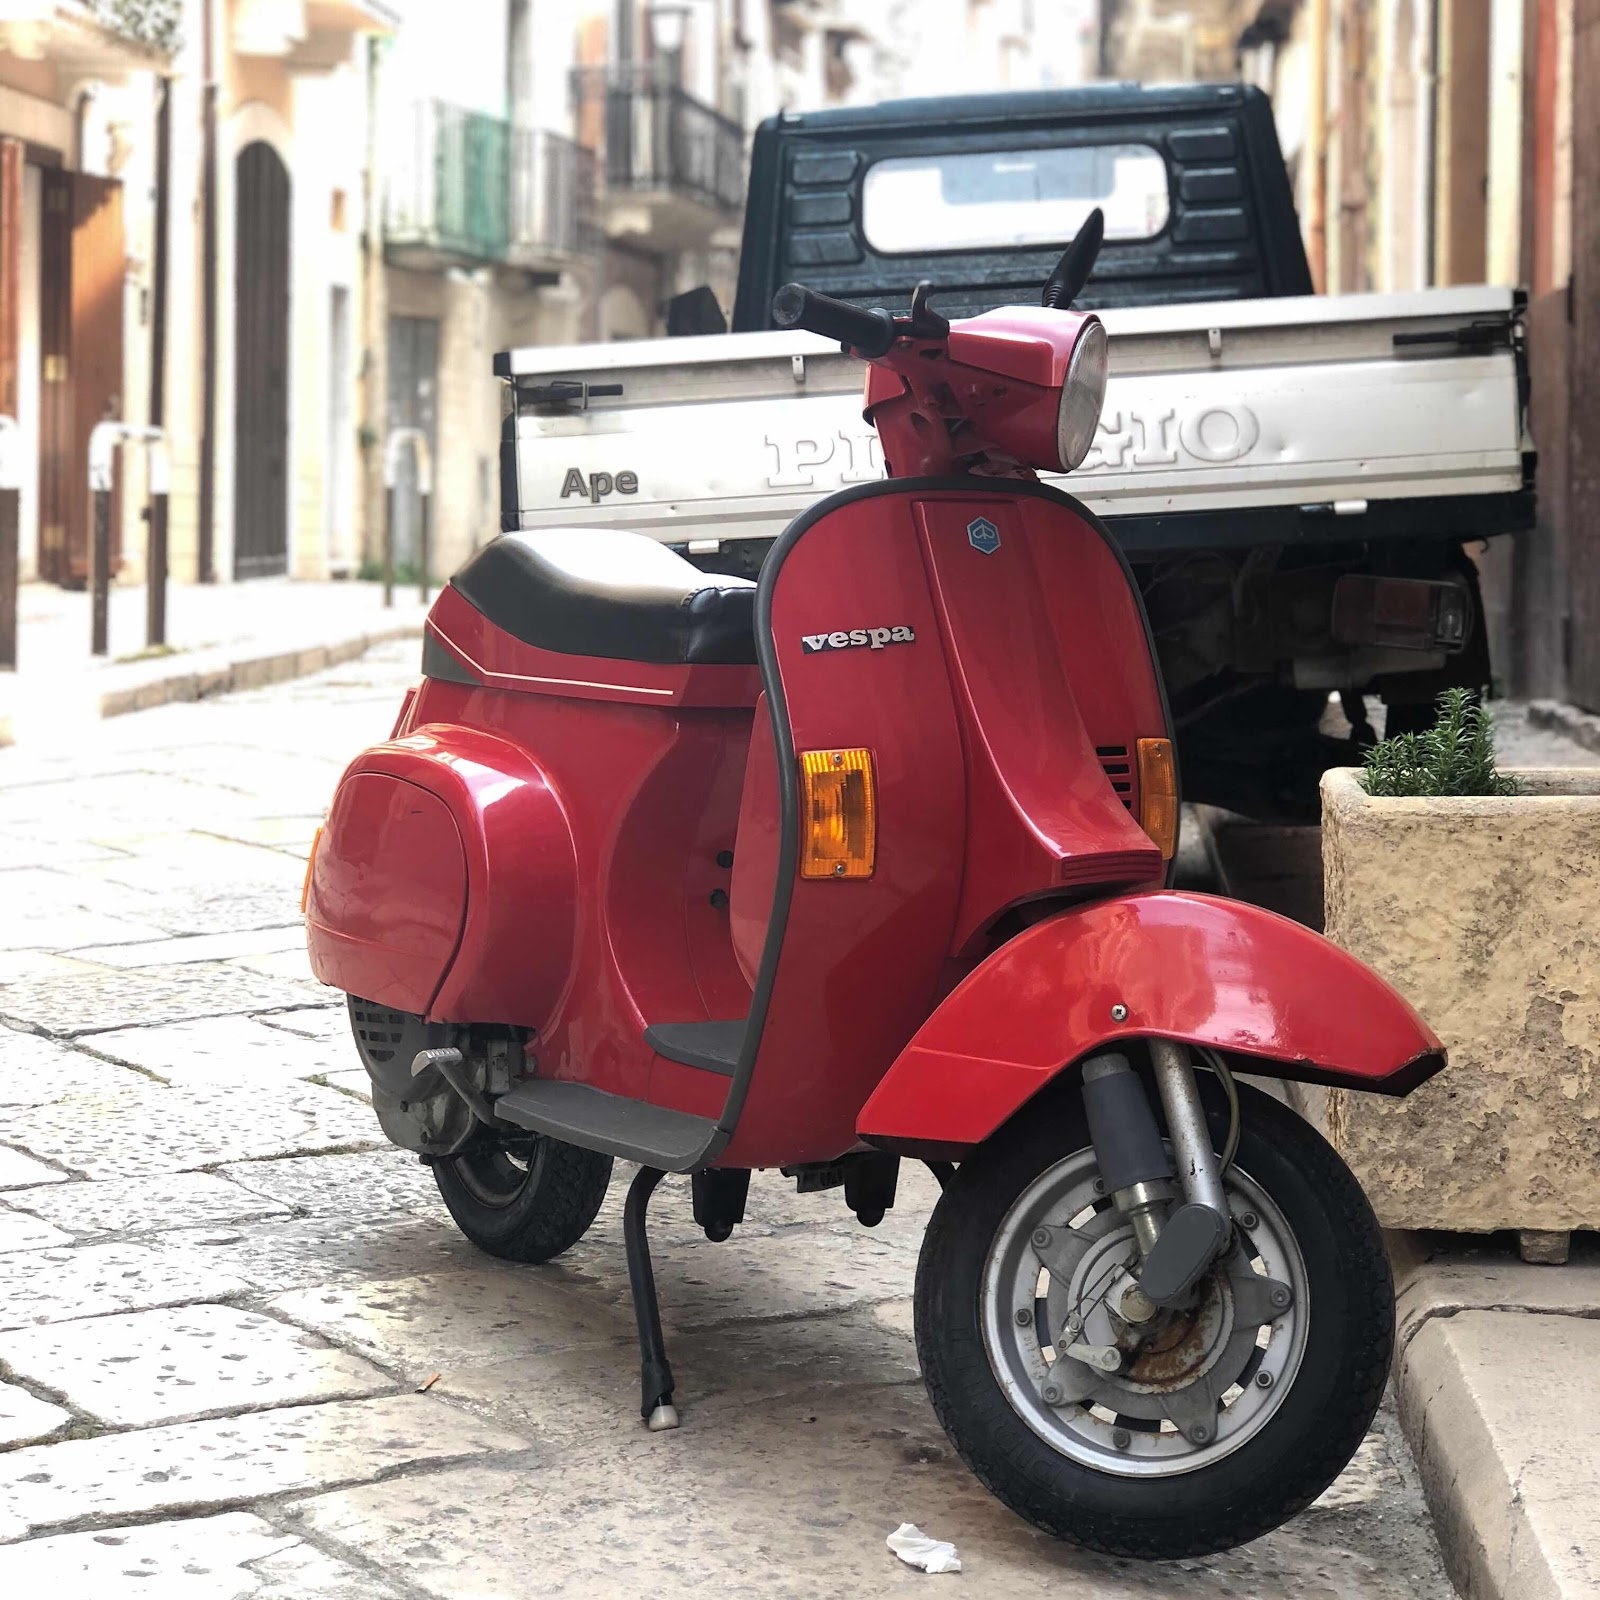 travel-blog-bari-italy-vespa